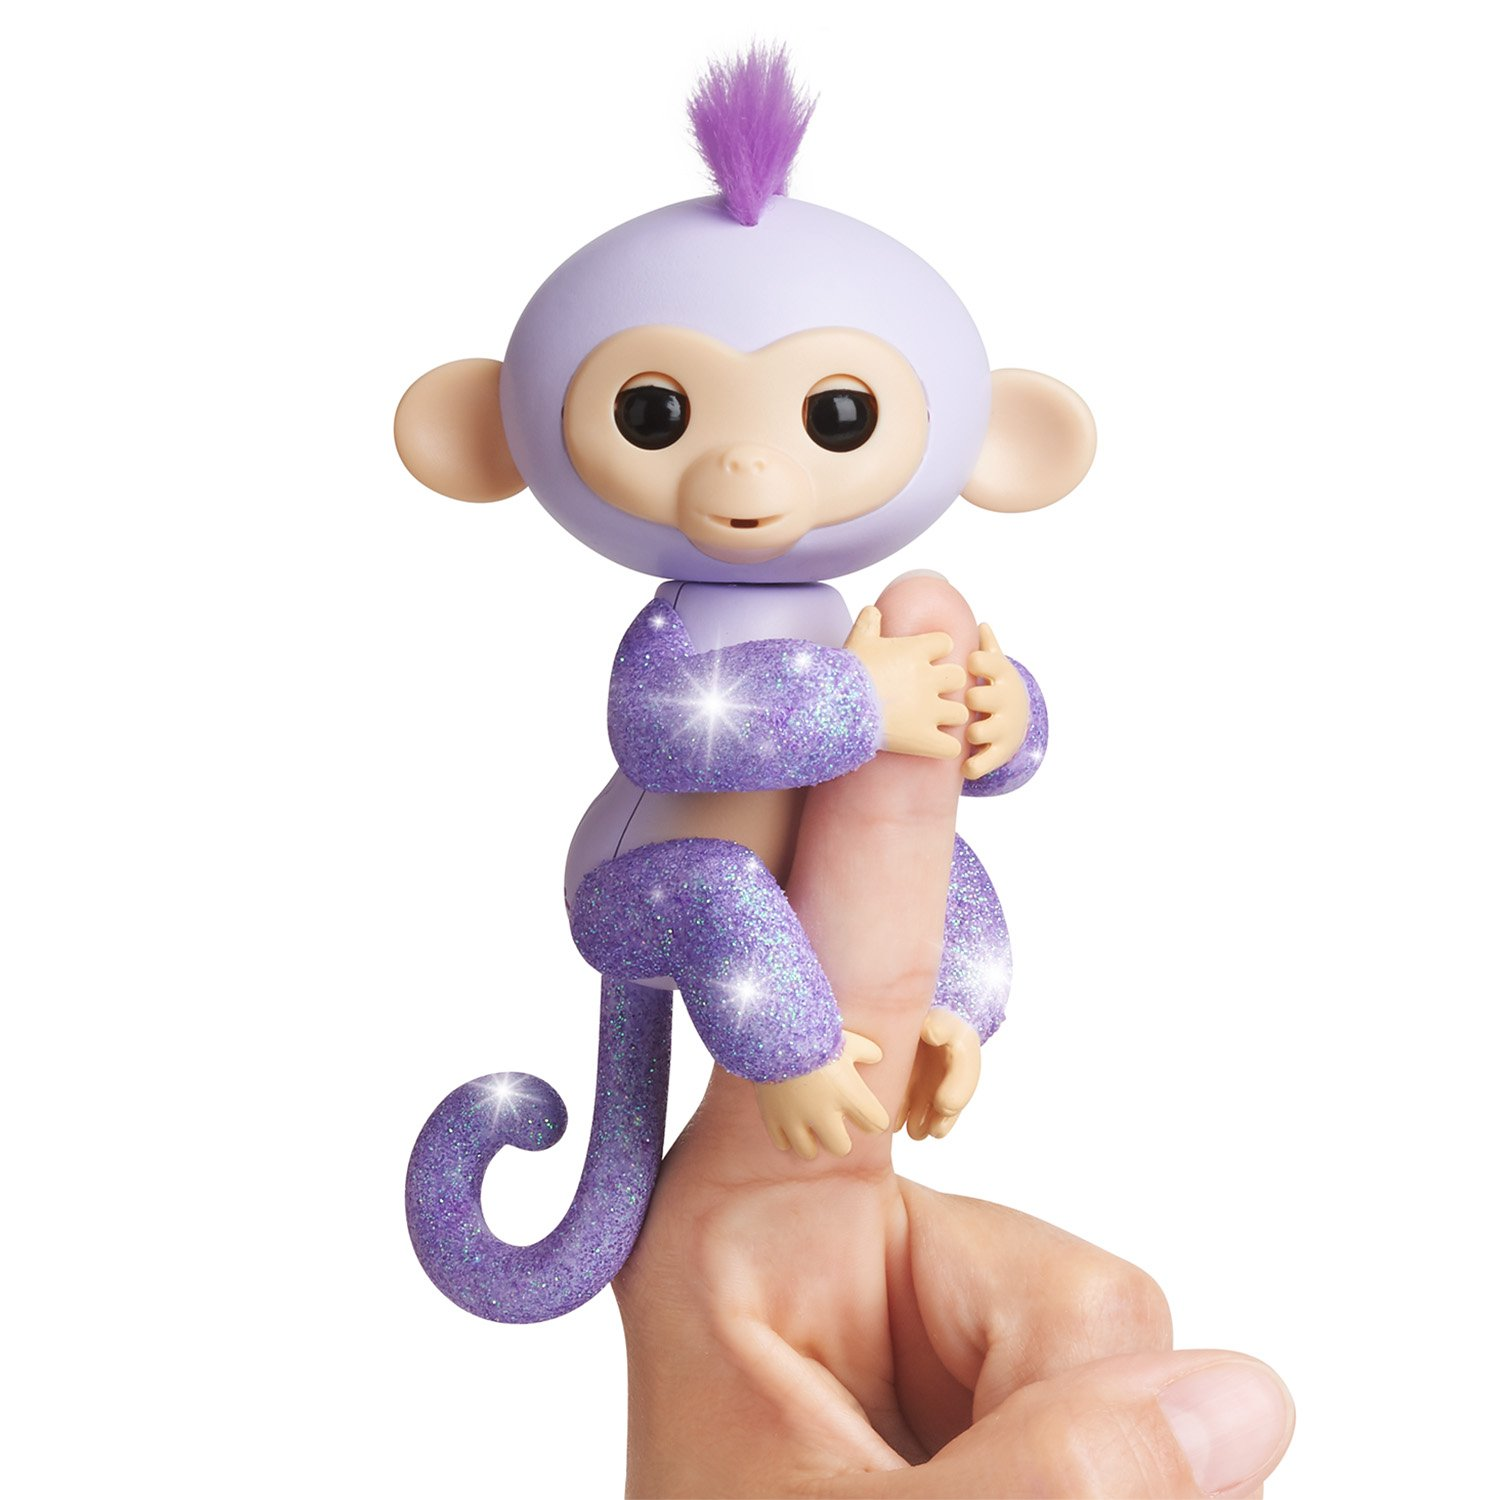 Fingerlings Glitter Monkey - Kiki (Purple Glitter) - Interactive Baby Pet - By WowWee